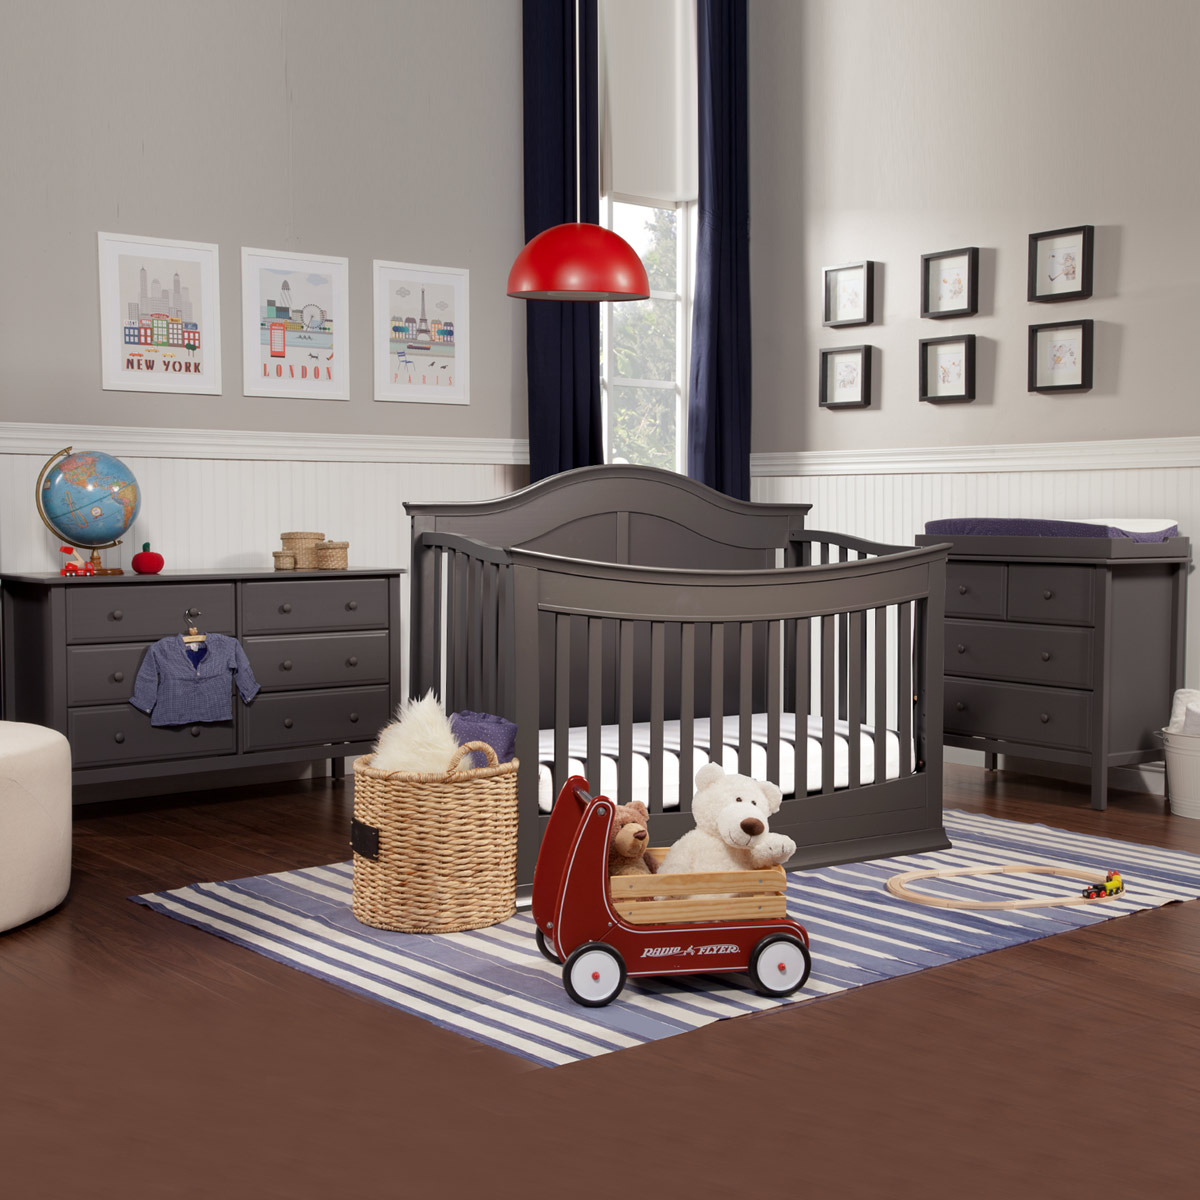 Baby cribs with matching dresser - Davinci Meadow 3 Piece Nursery Set 4 In 1 Convertible Crib Autumn Changer Dresser